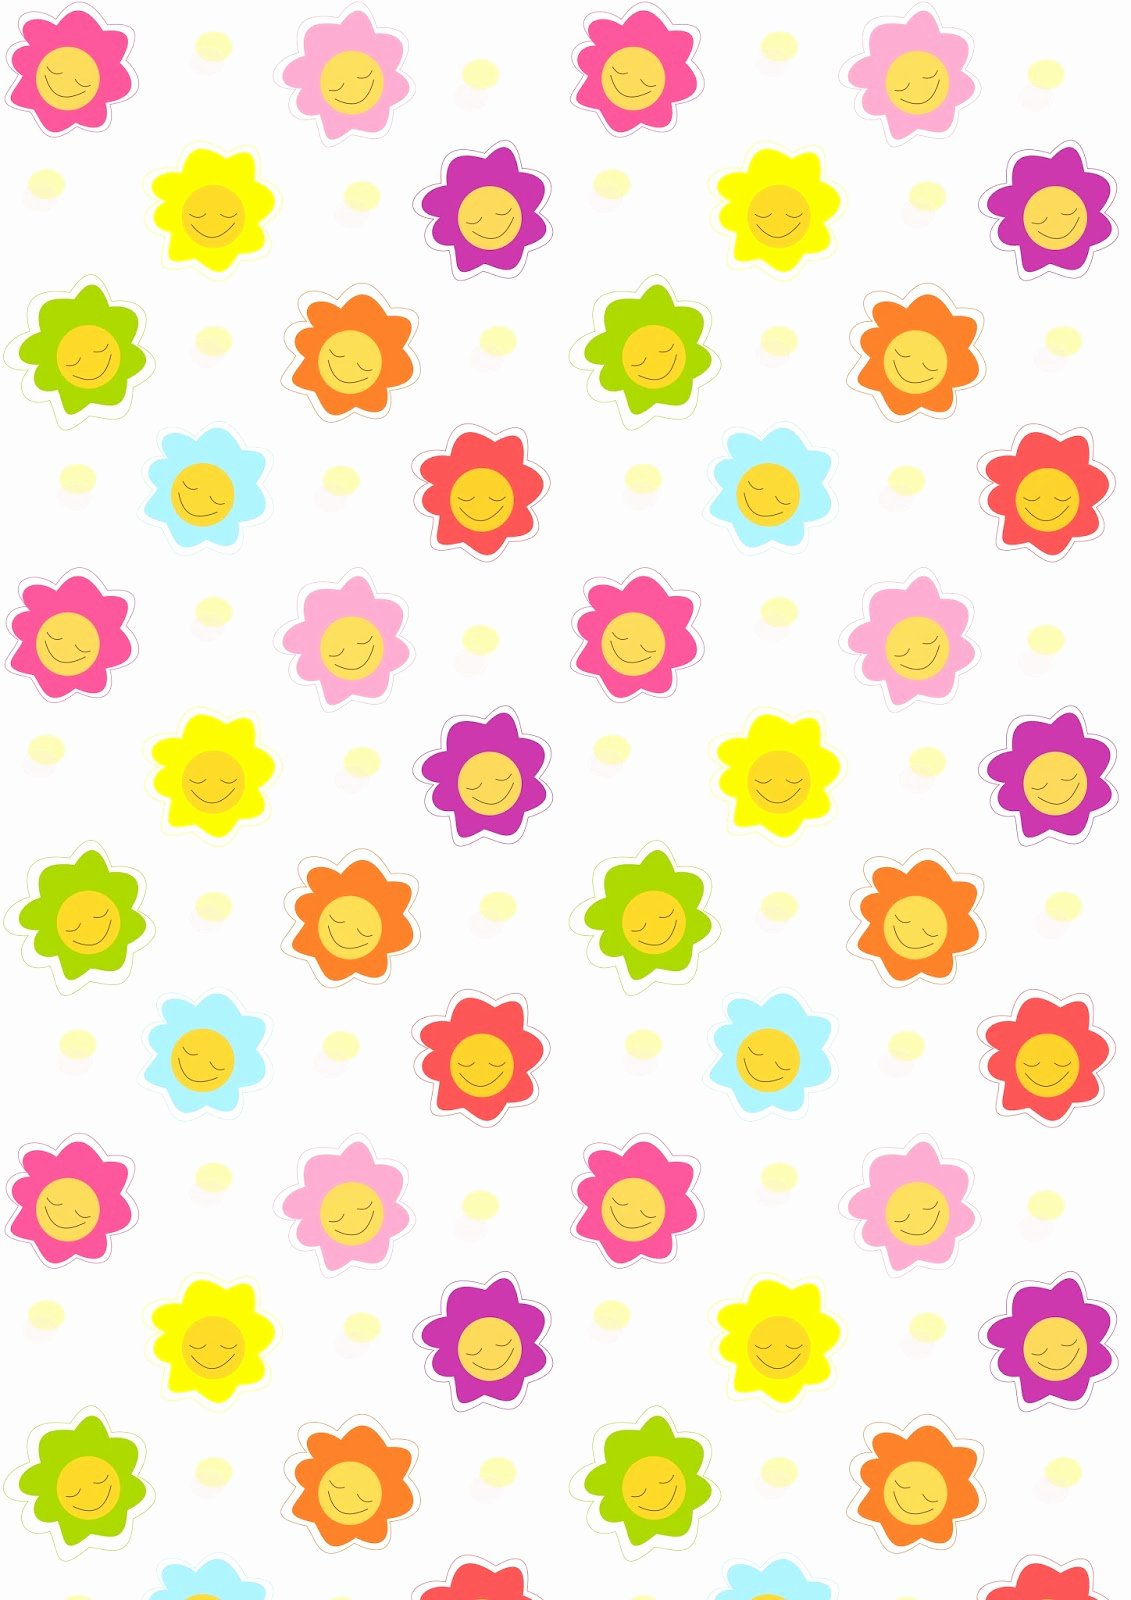 Free Paper Flower Patterns Lovely Free Digital Smiling Scrapbooking Paper Ausdruckbares